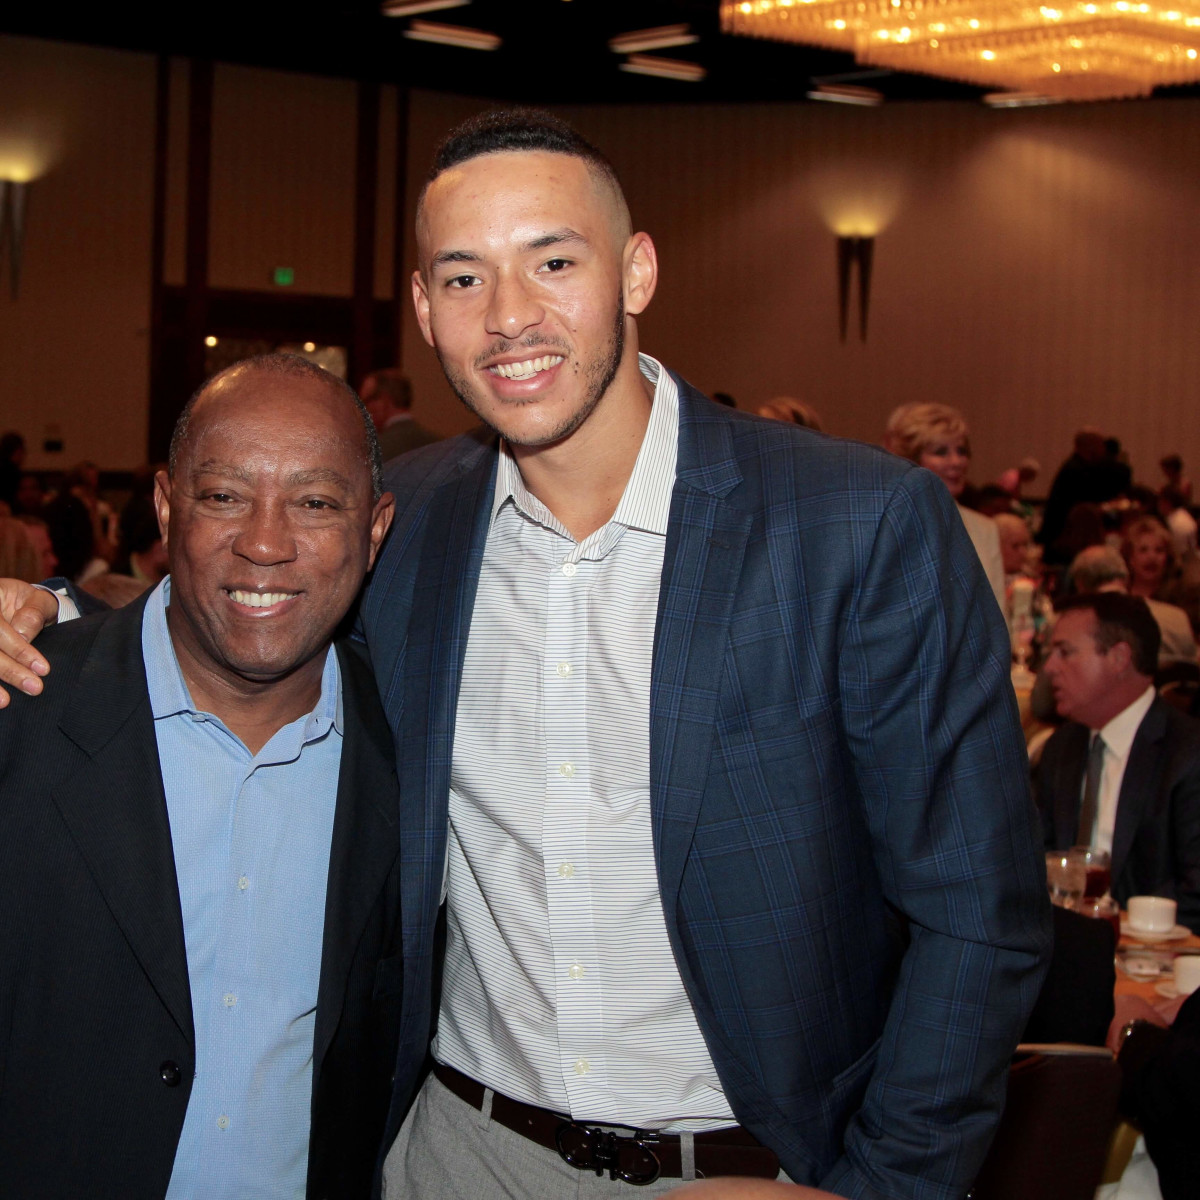 Houston Children's Charity 20th anniversary, 9/16 Mayor Sylvester Turner, Carlos Correa